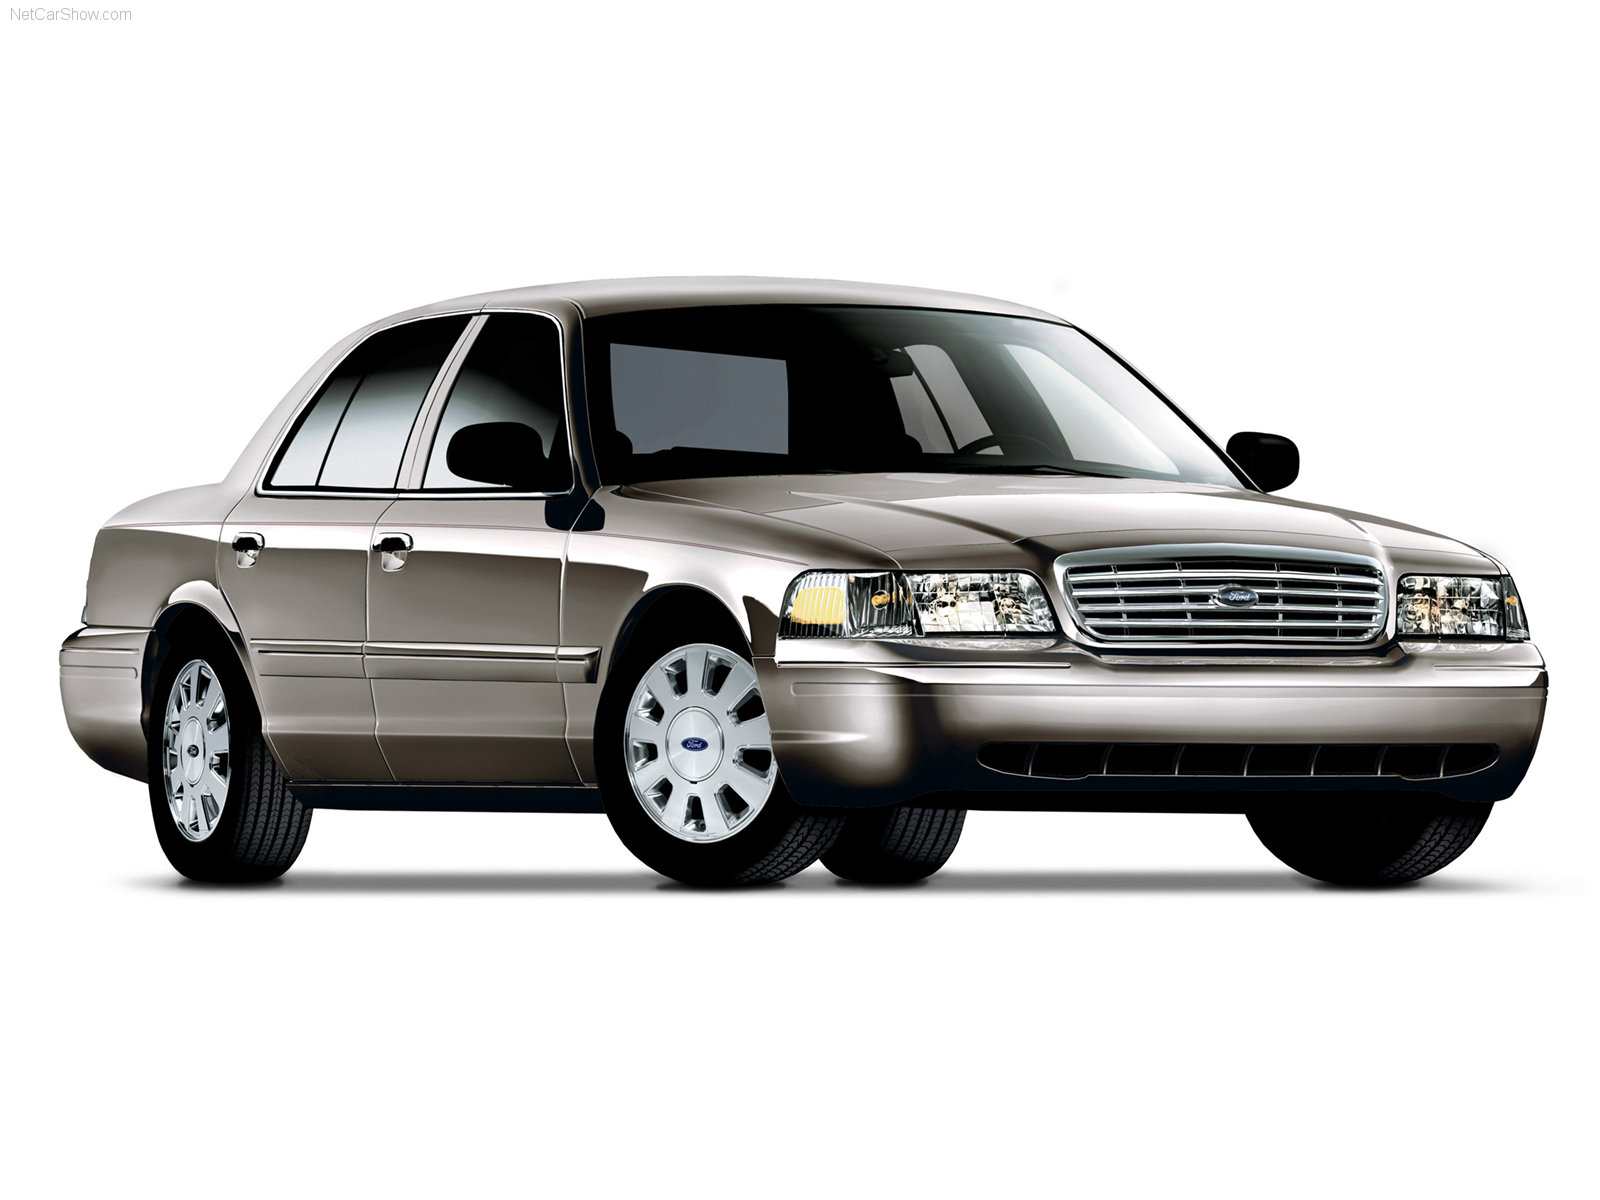 Ford Crown Victoria photo 33140